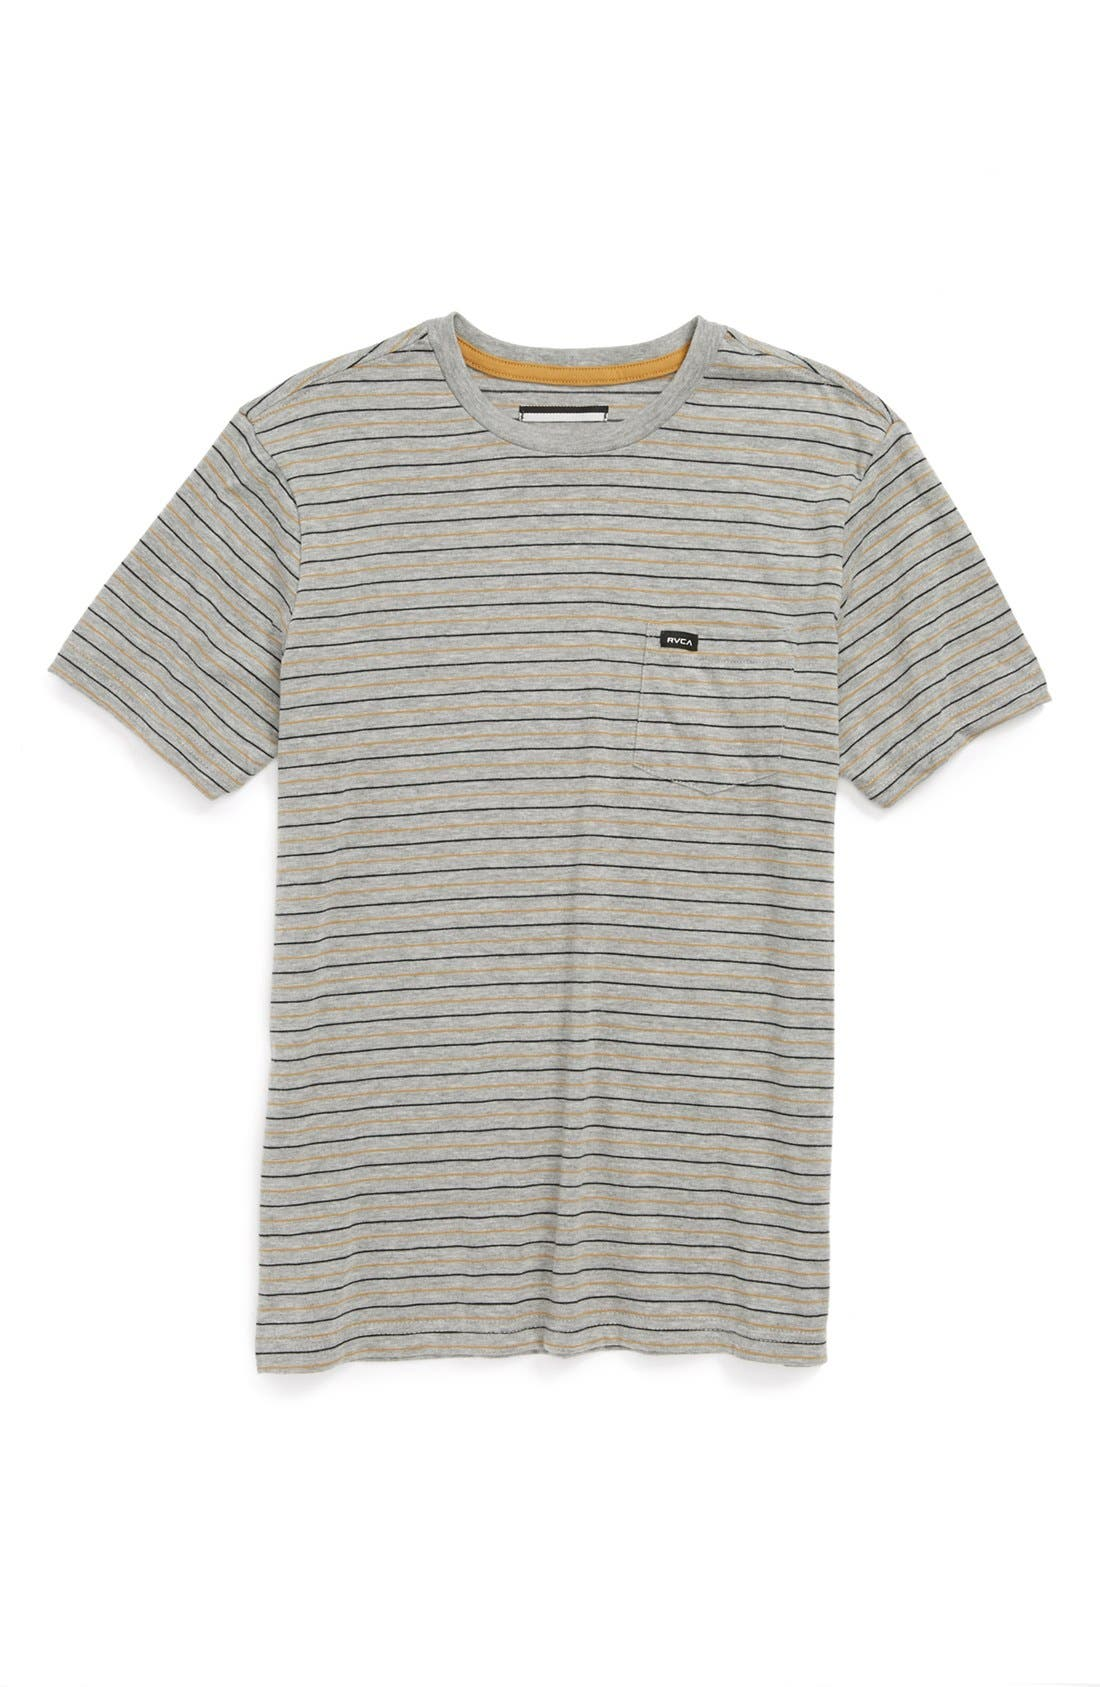 Main Image - RVCA 'Dilated' T-Shirt (Big Boys)